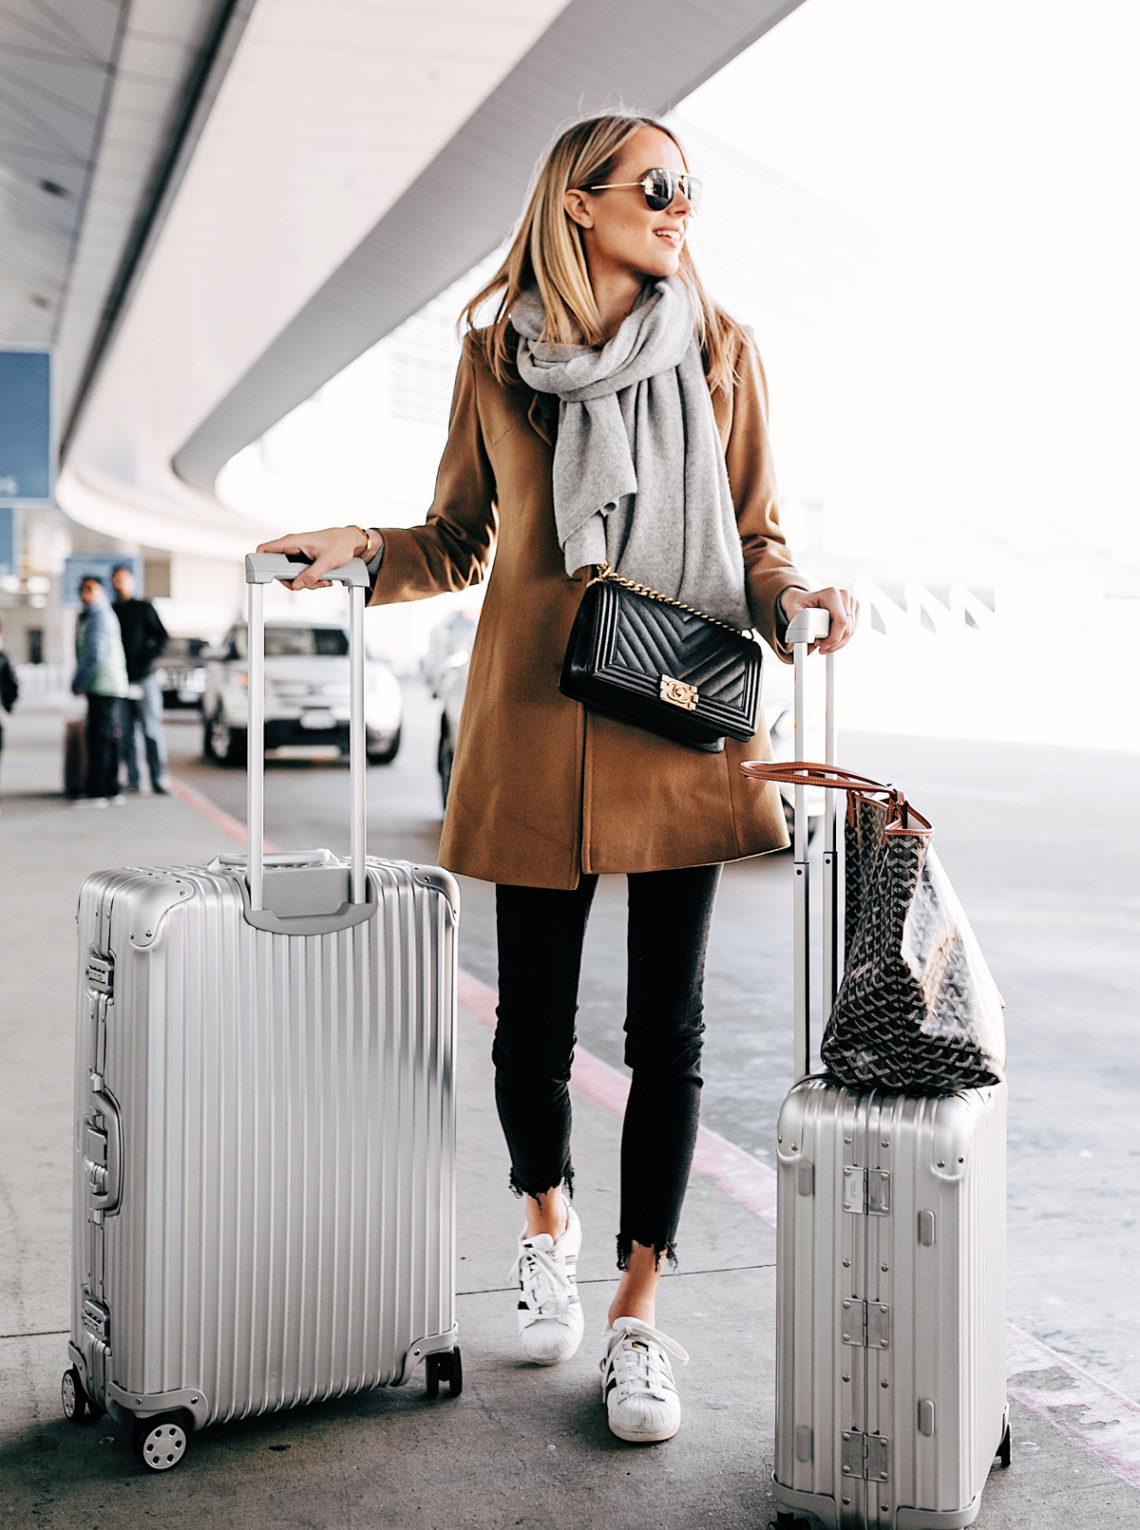 Blonde Woman with Rimowa Luggage at Airport Fashion Jackson